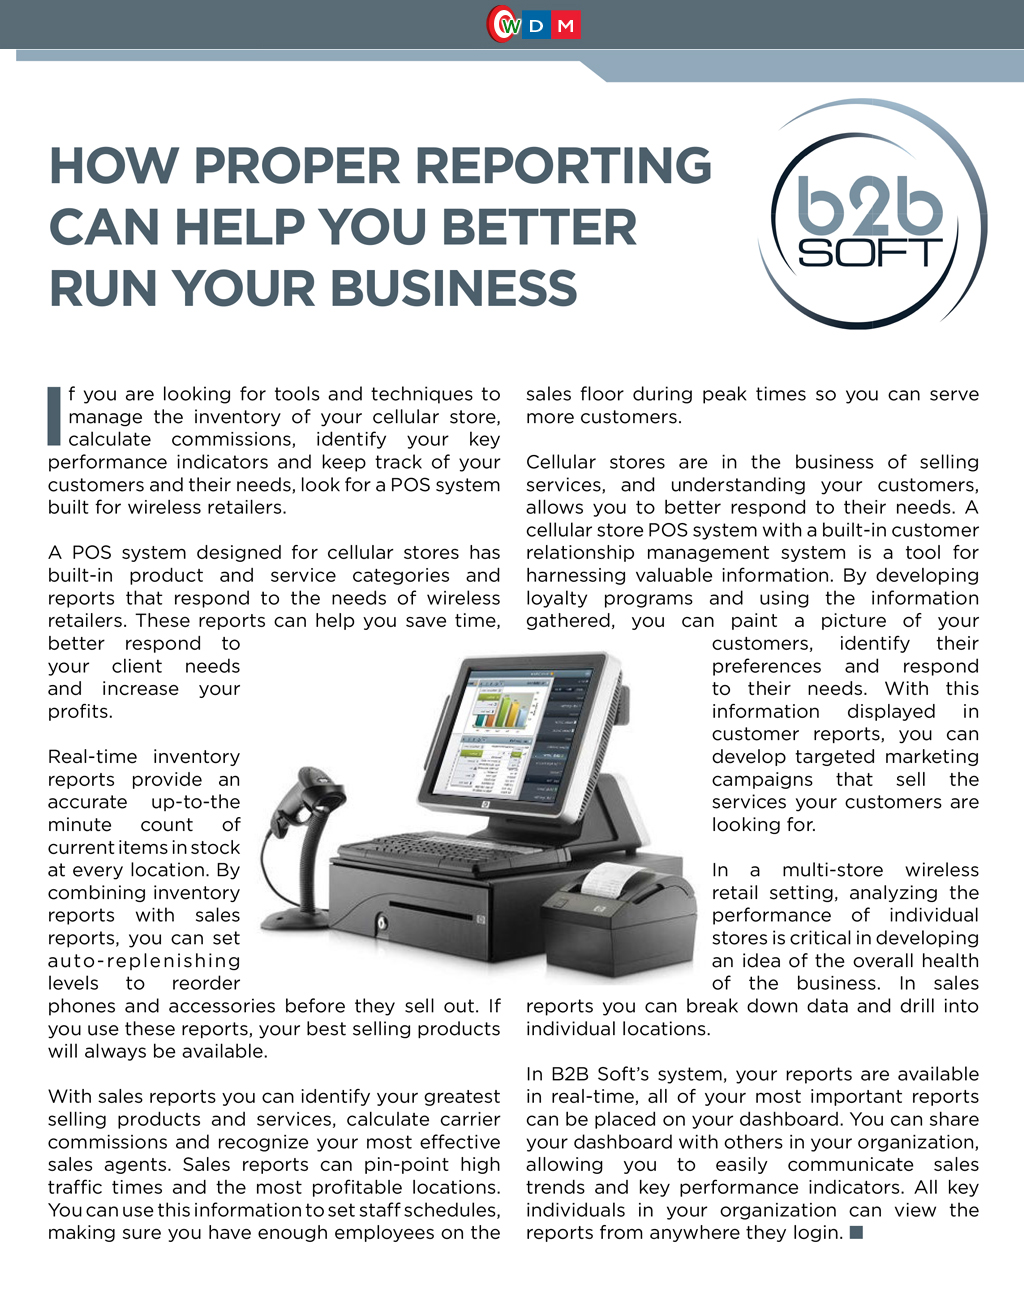 How Proper Reporting Can Help You Better Run Your Business